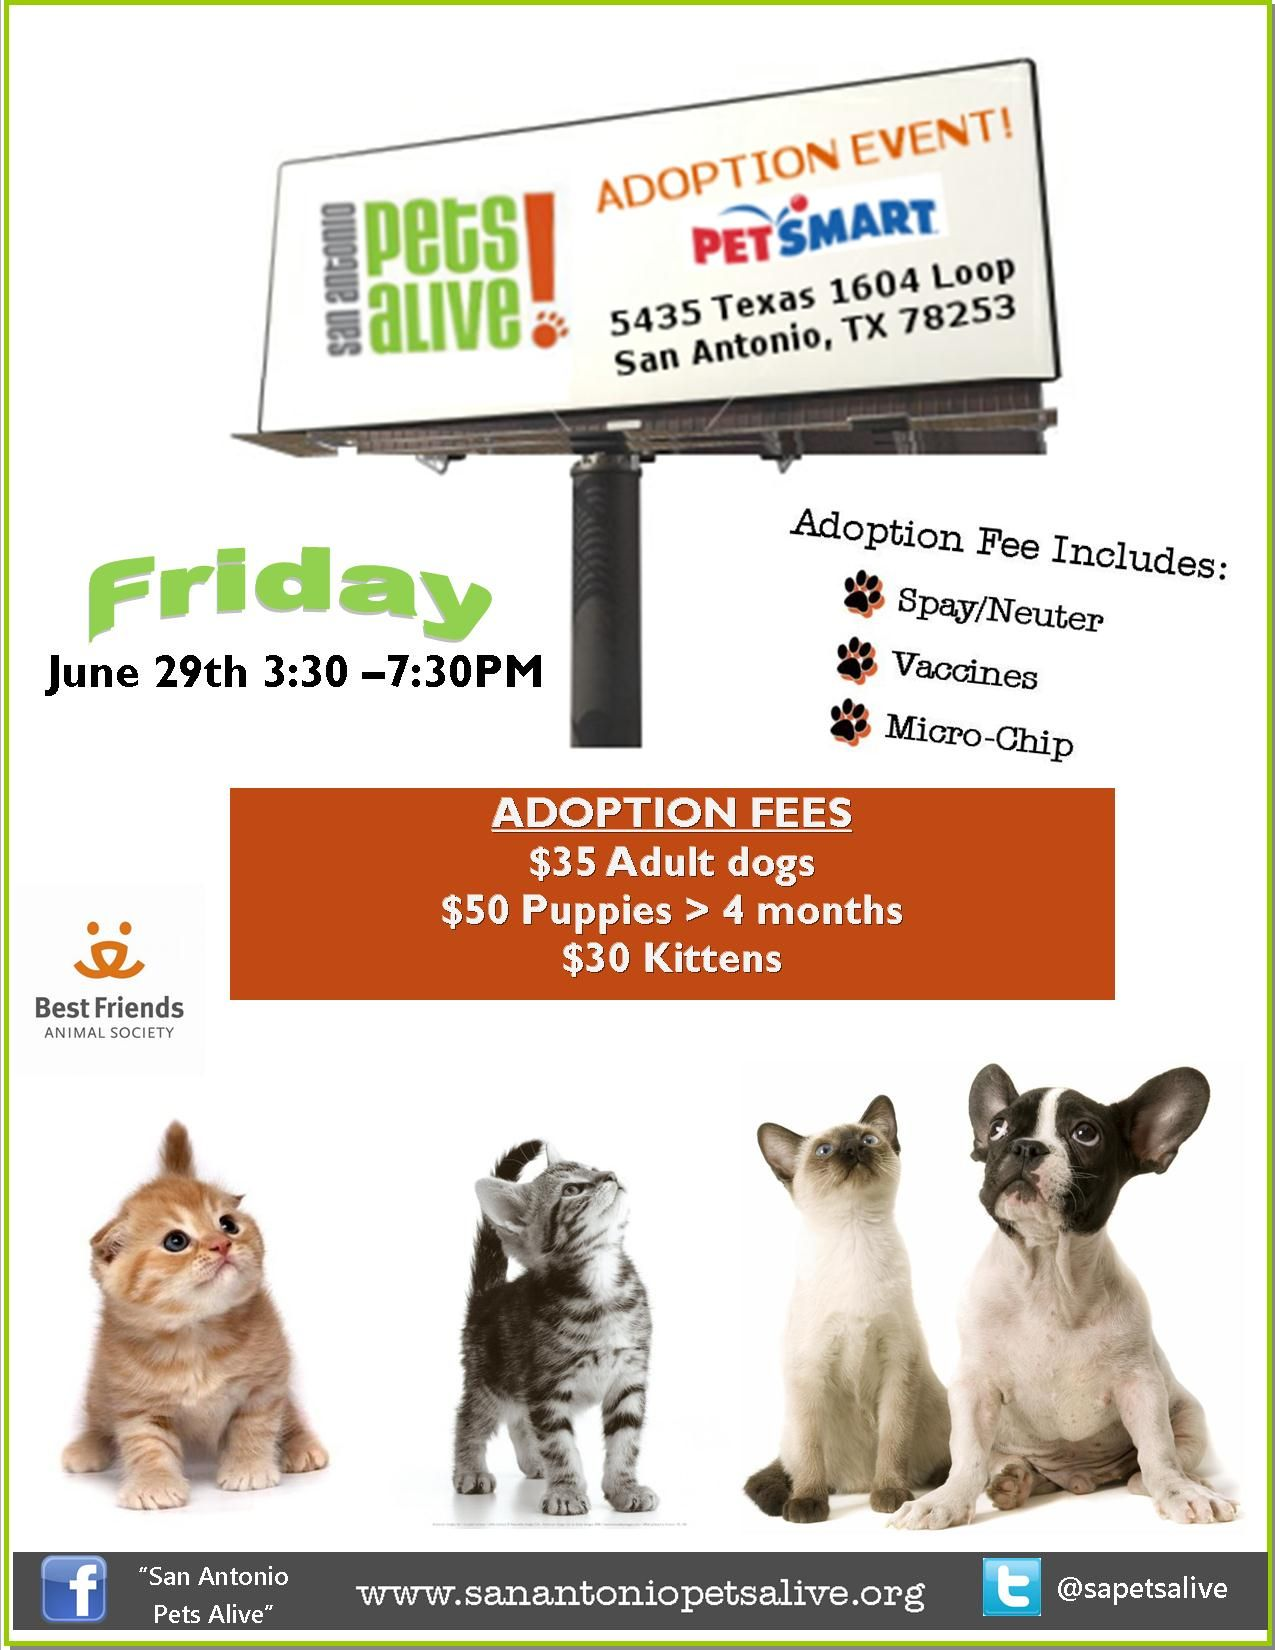 Adoption Events This Weekend Come Save A Life And Gain A New Best Friend Friday June 29th From 3 30 7 30 Pm At Alamo Animal Society Puppies Kittens